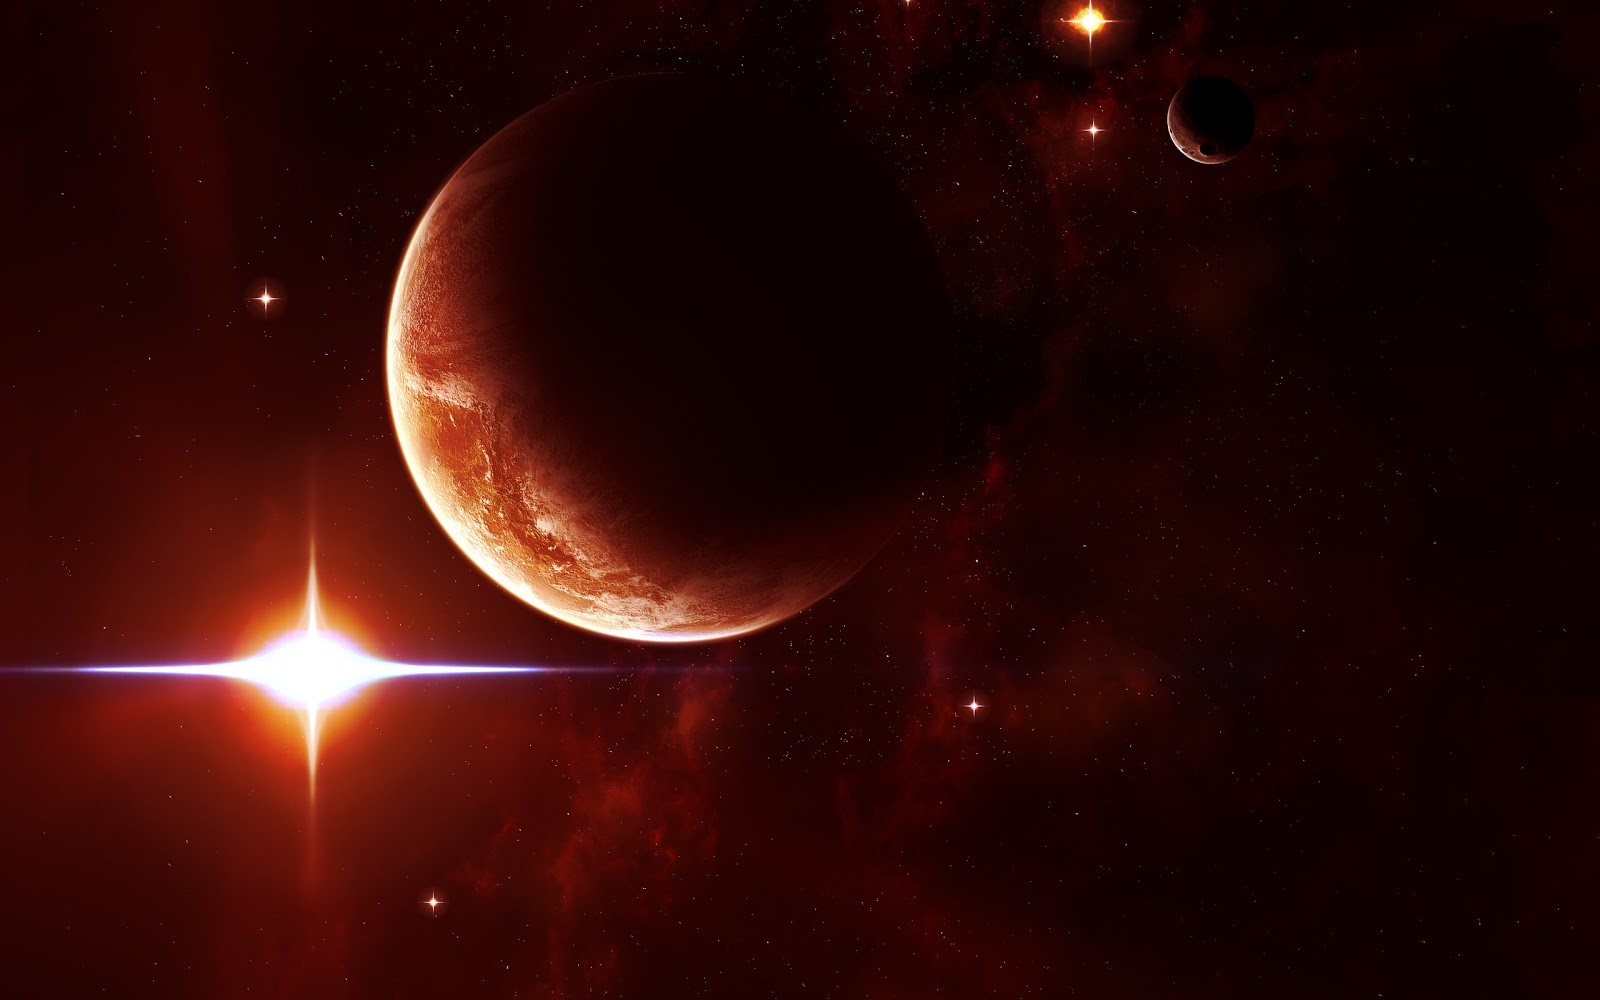 red star planet - photo #21